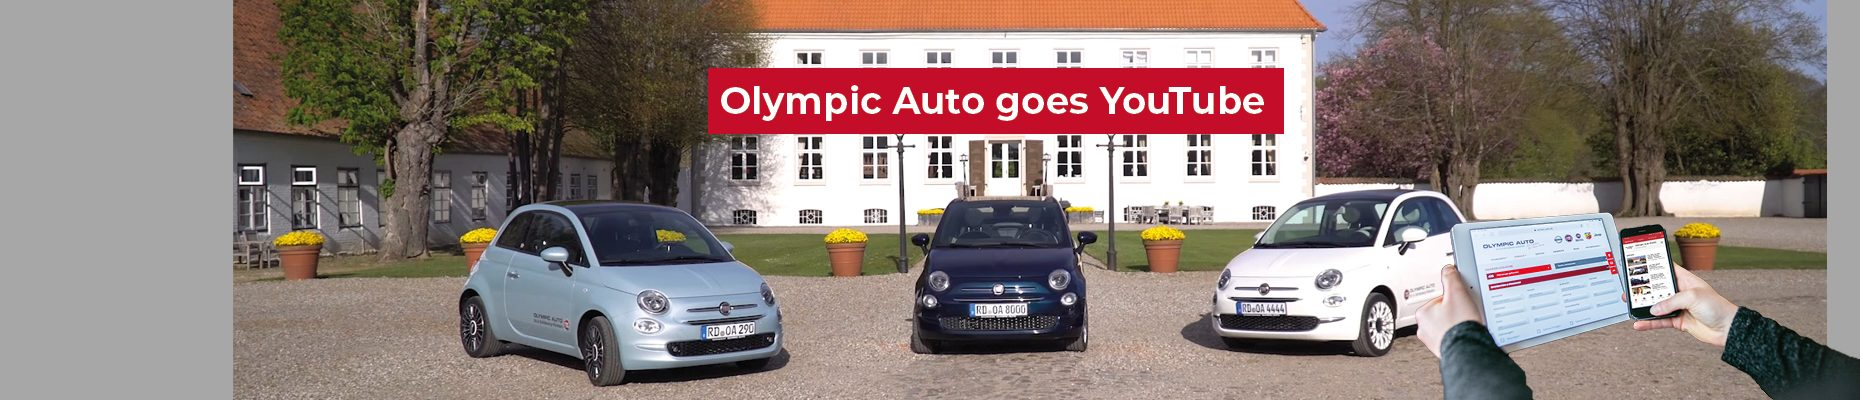 Olympic Auto goes YouTube